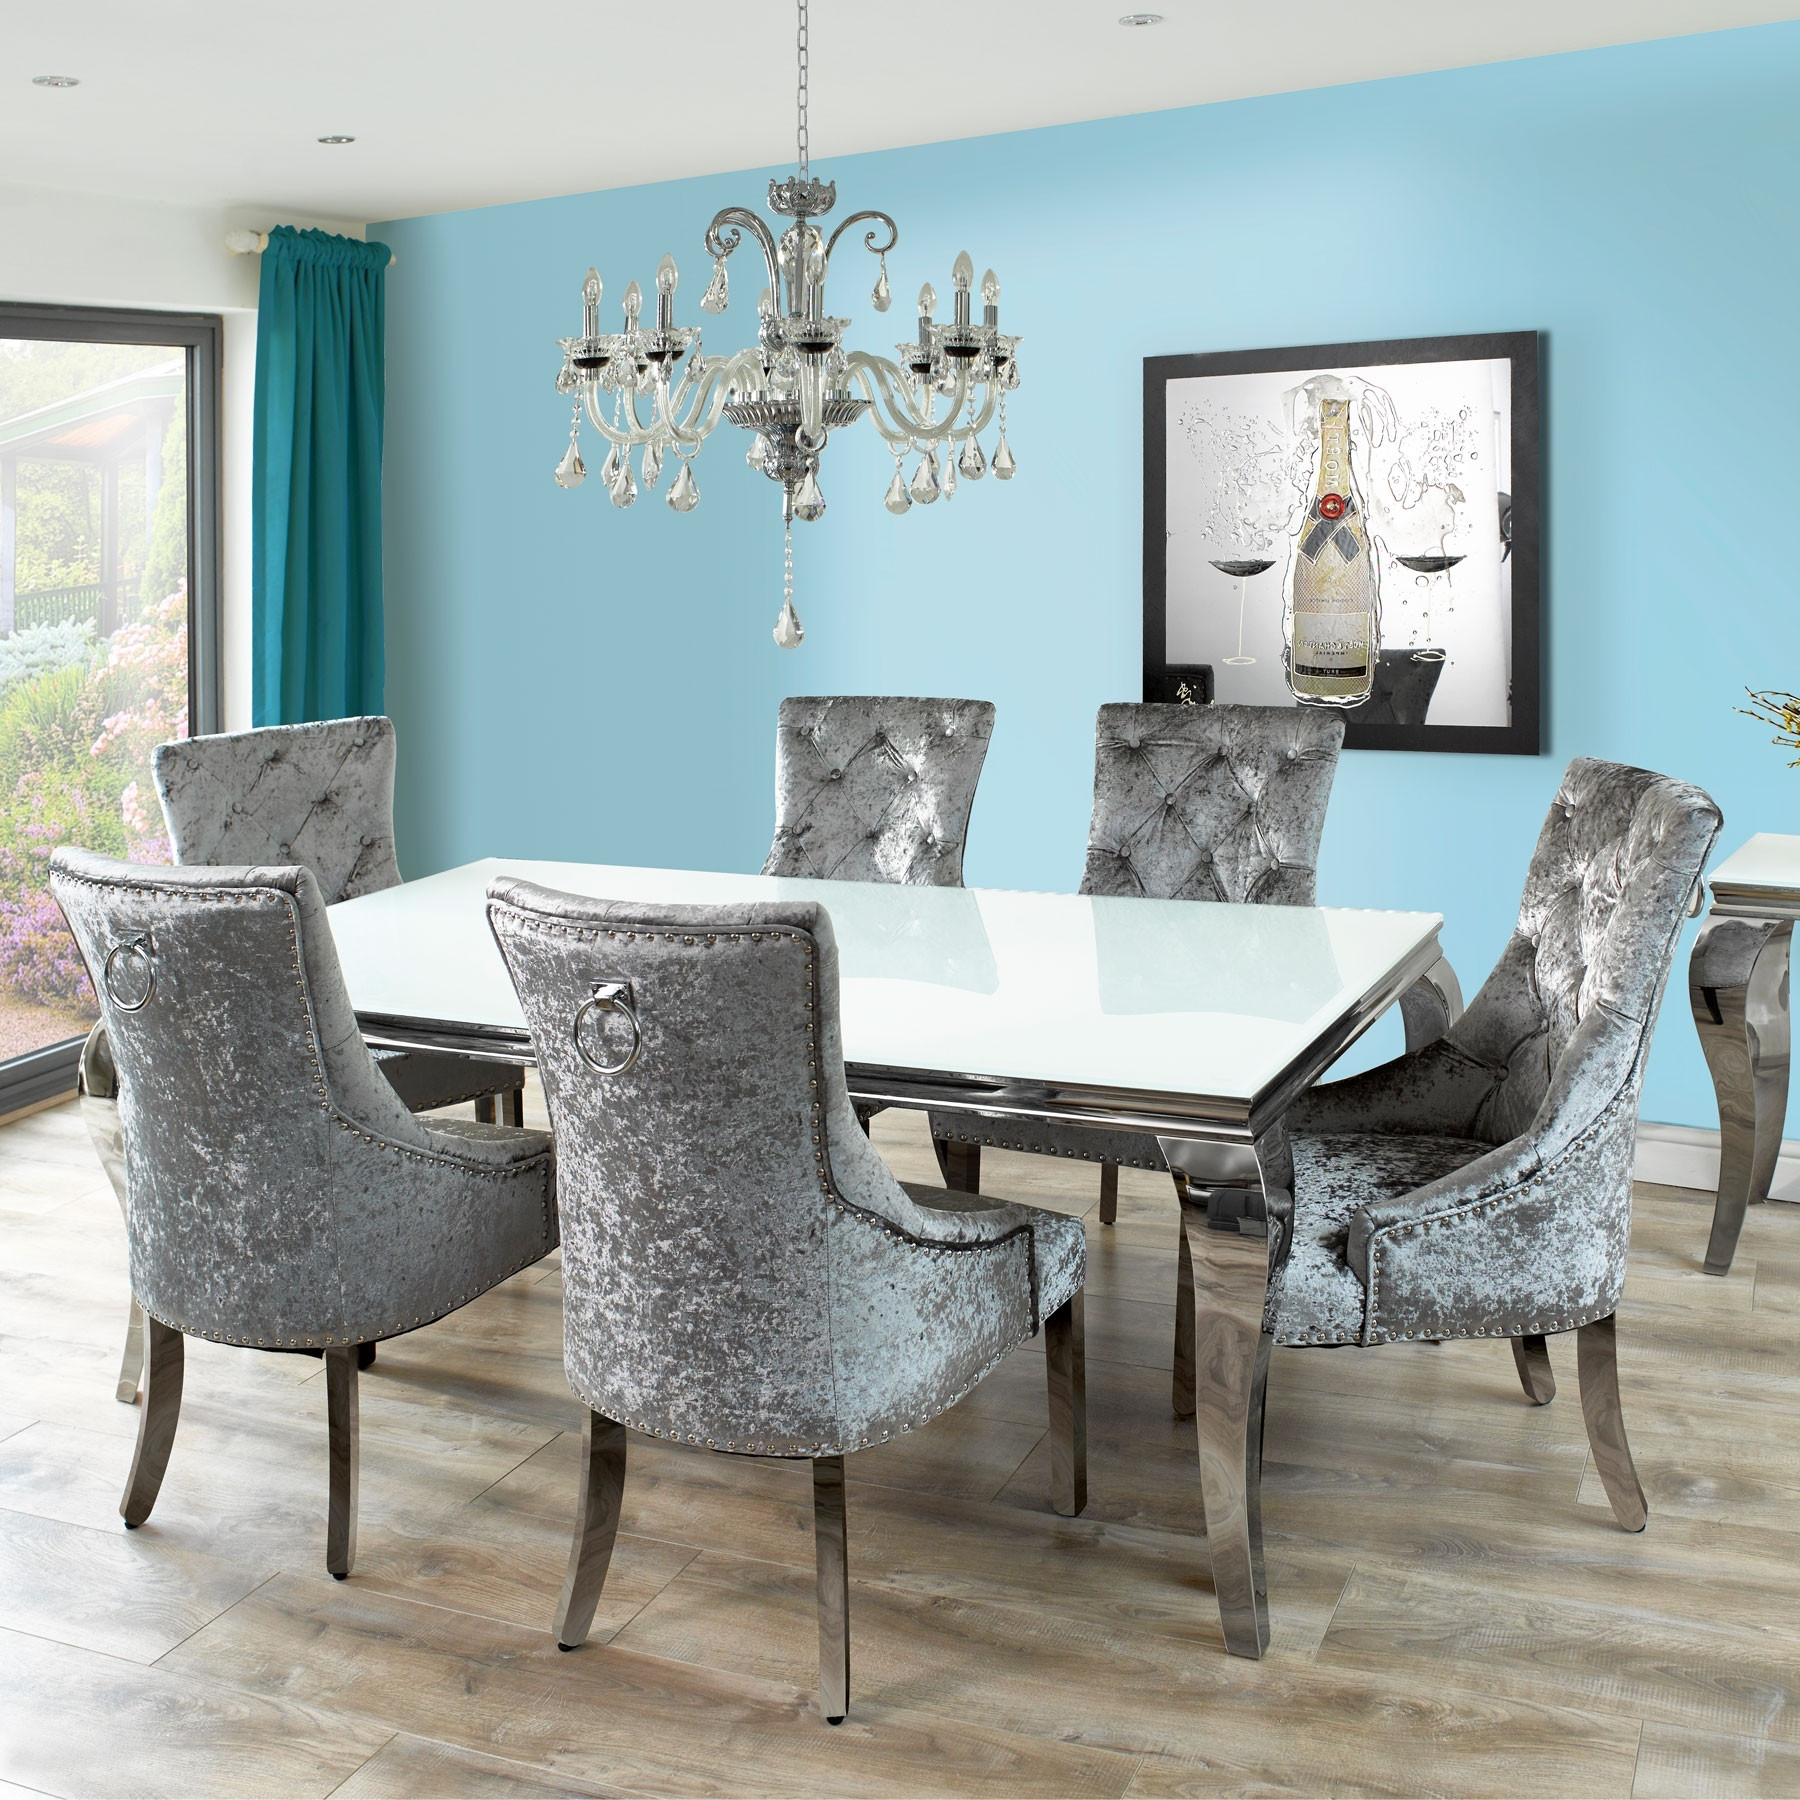 Most Current Fadenza Small White Glass Dining Table & 4 Silver Chairs With Throughout Small White Dining Tables (View 7 of 25)